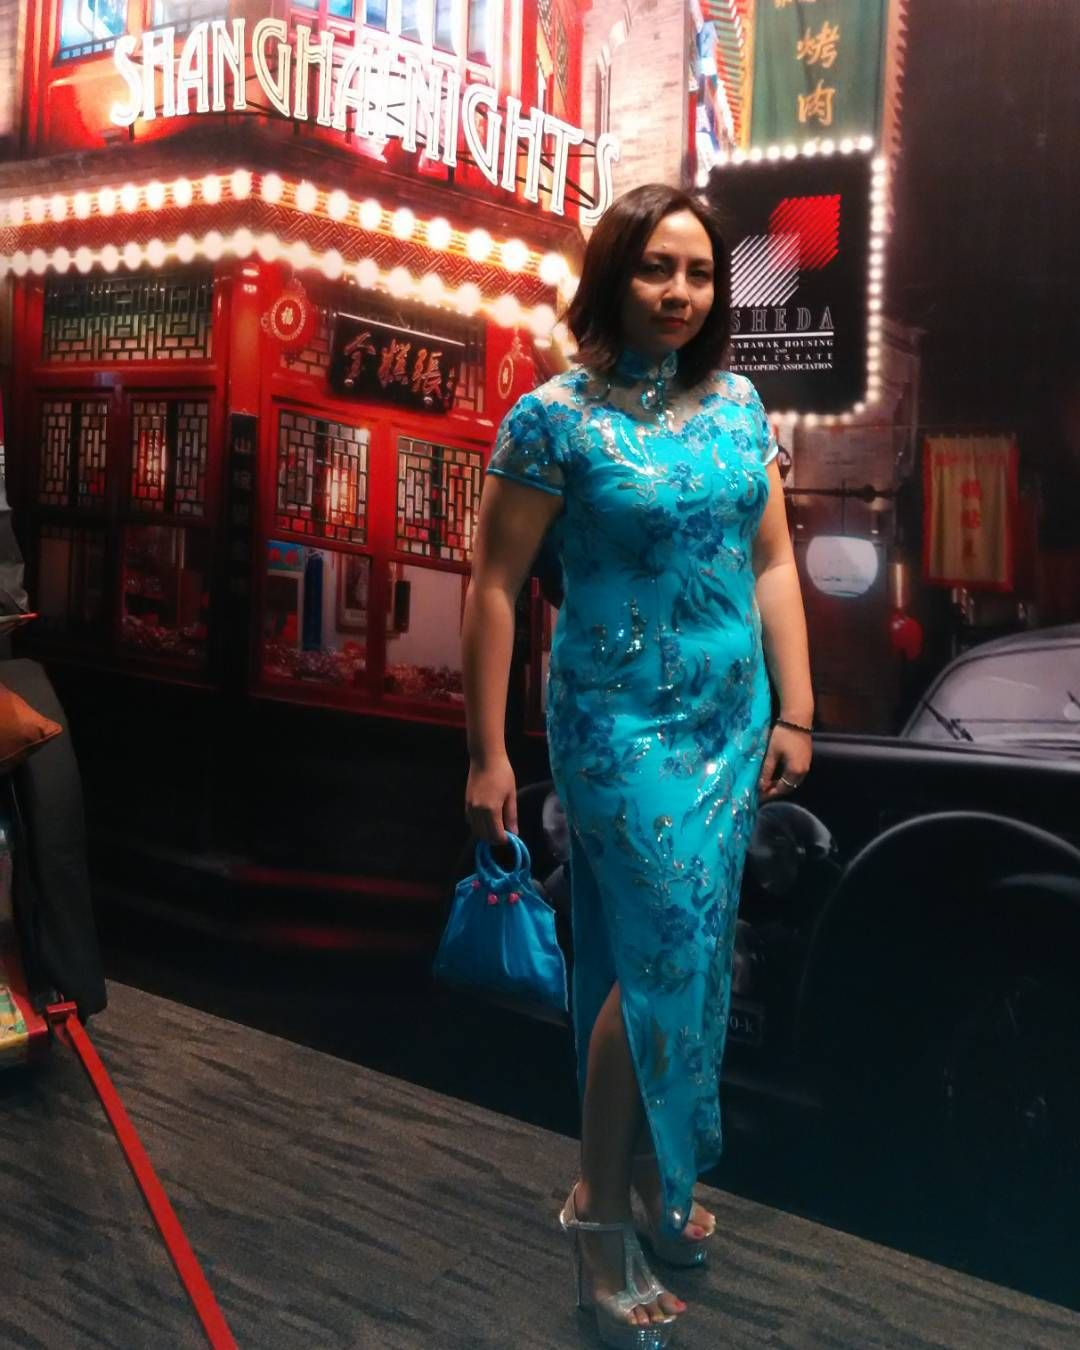 """I'm grabbing all opportunities to wear this!  #cheongsam #shanghainights #sheda #work #bluedress #sparklydress #handmadebag #platformshoes"""